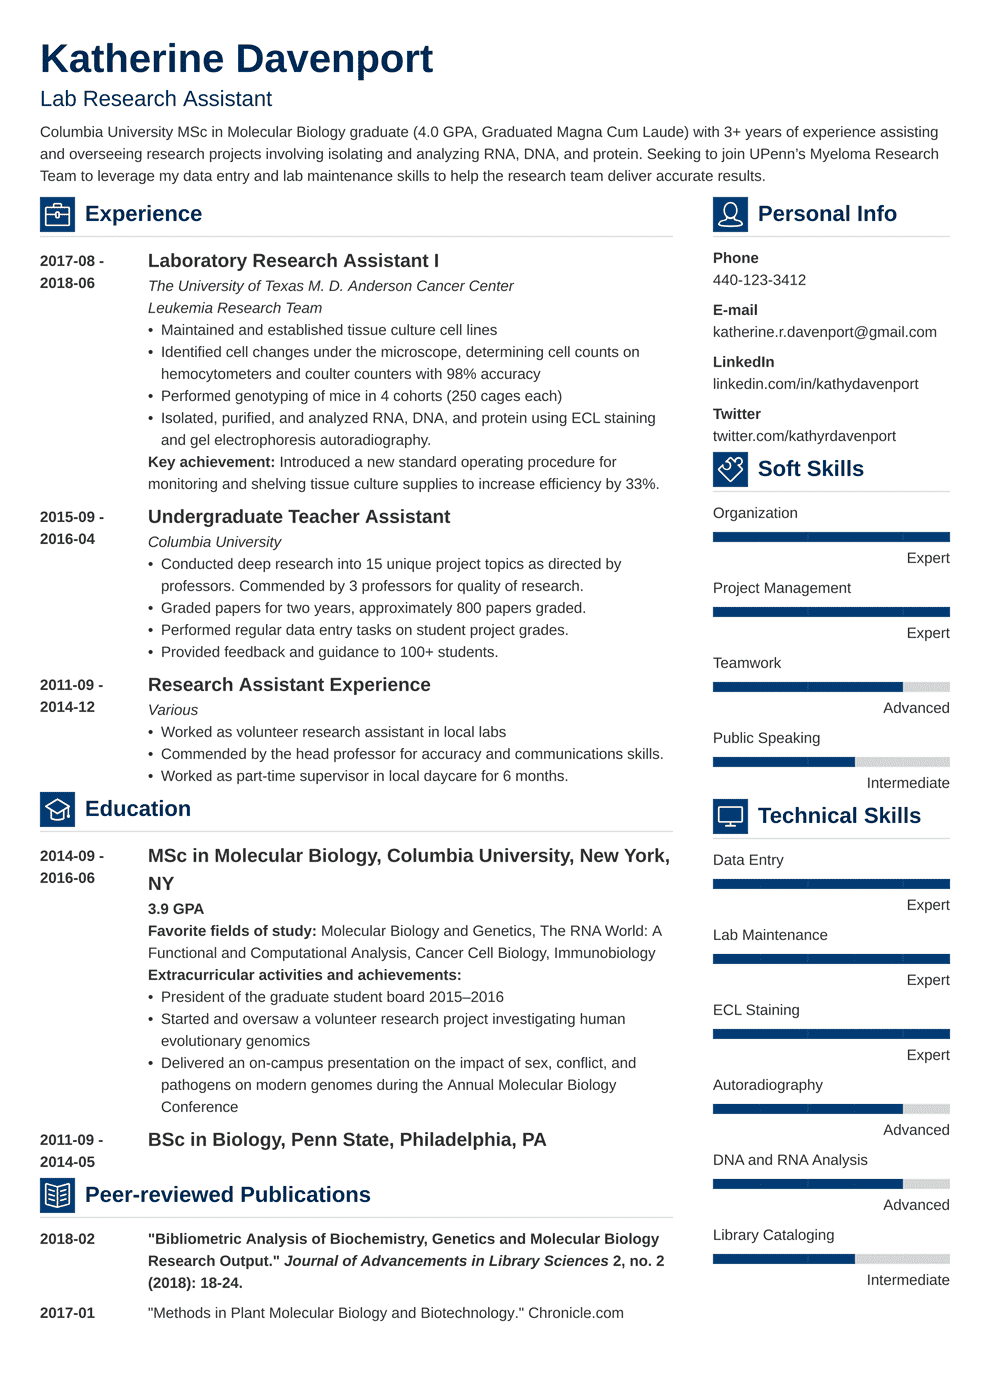 Research Assistant Resume: Sample & Writing Guide (20+ Examples)